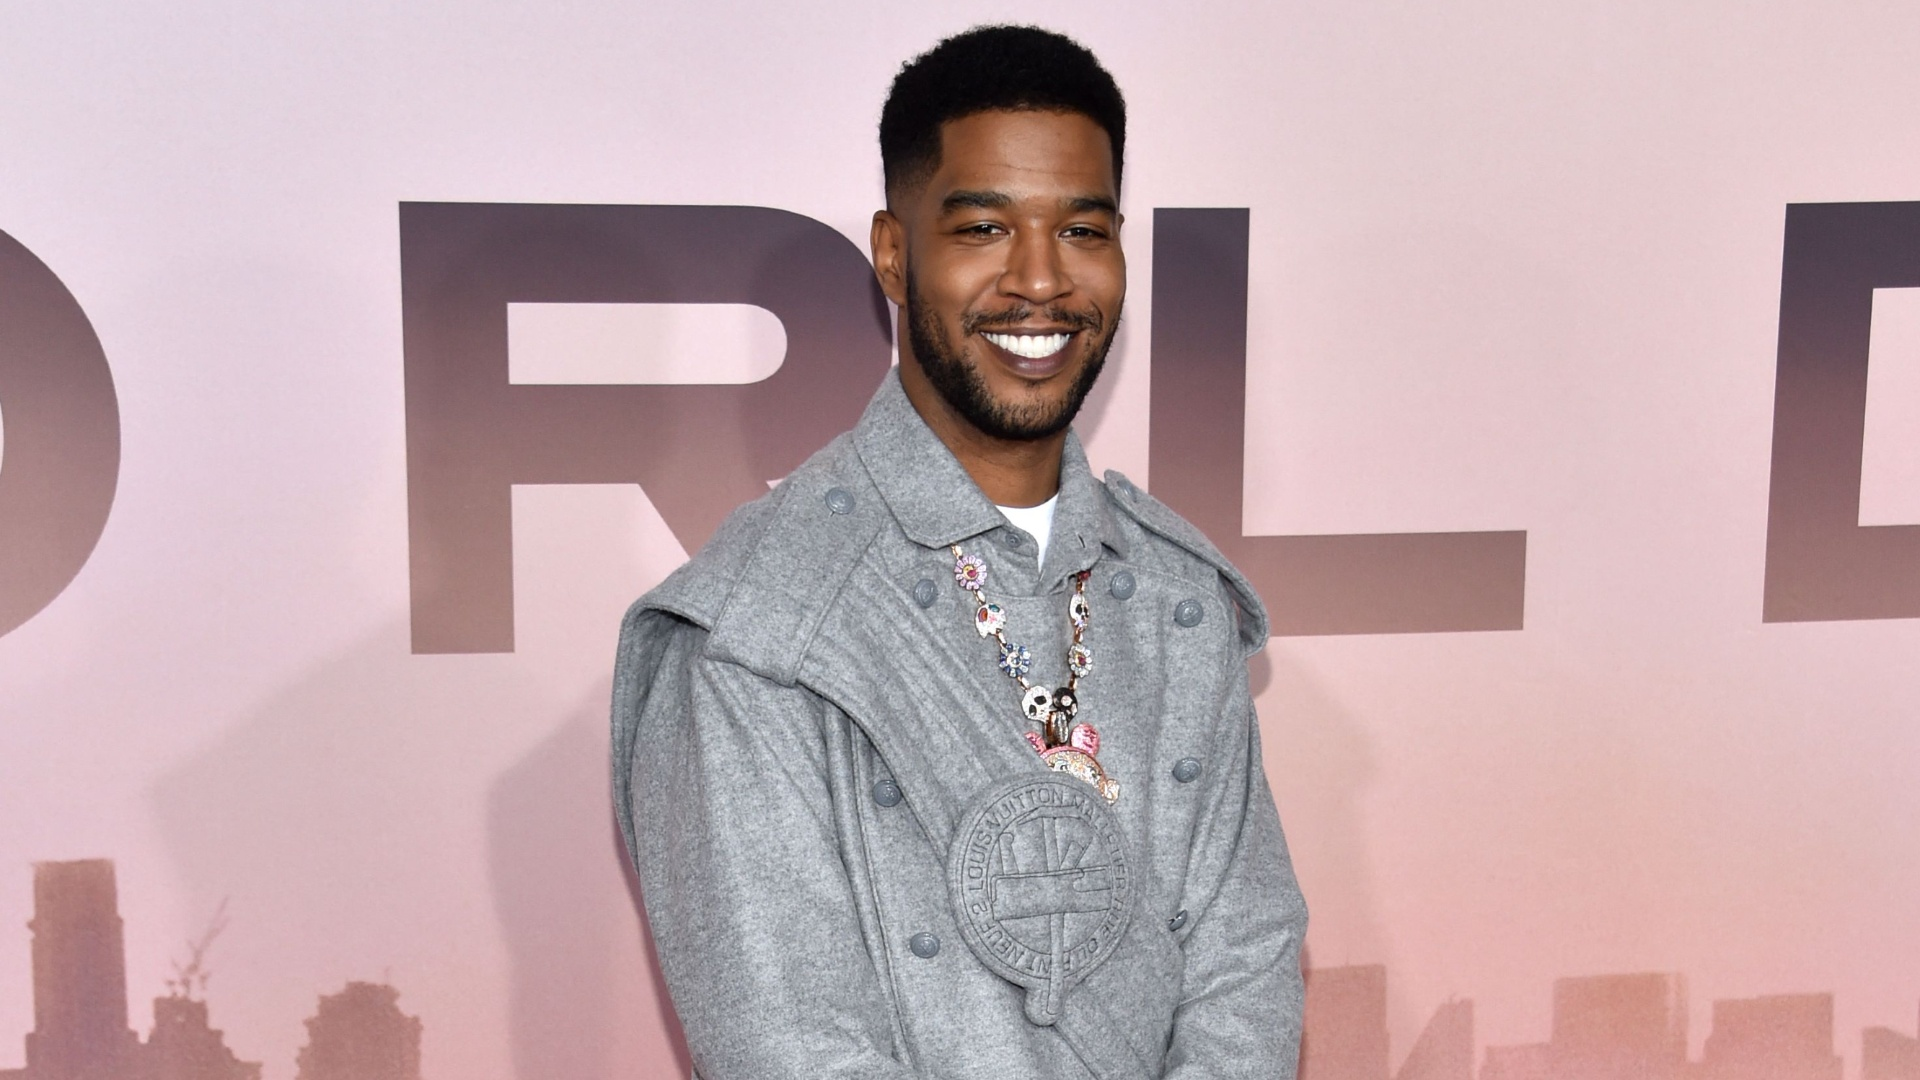 Kid Cudi Thanks Friends and Family for Support: 'I Won't Let You or the World Down'